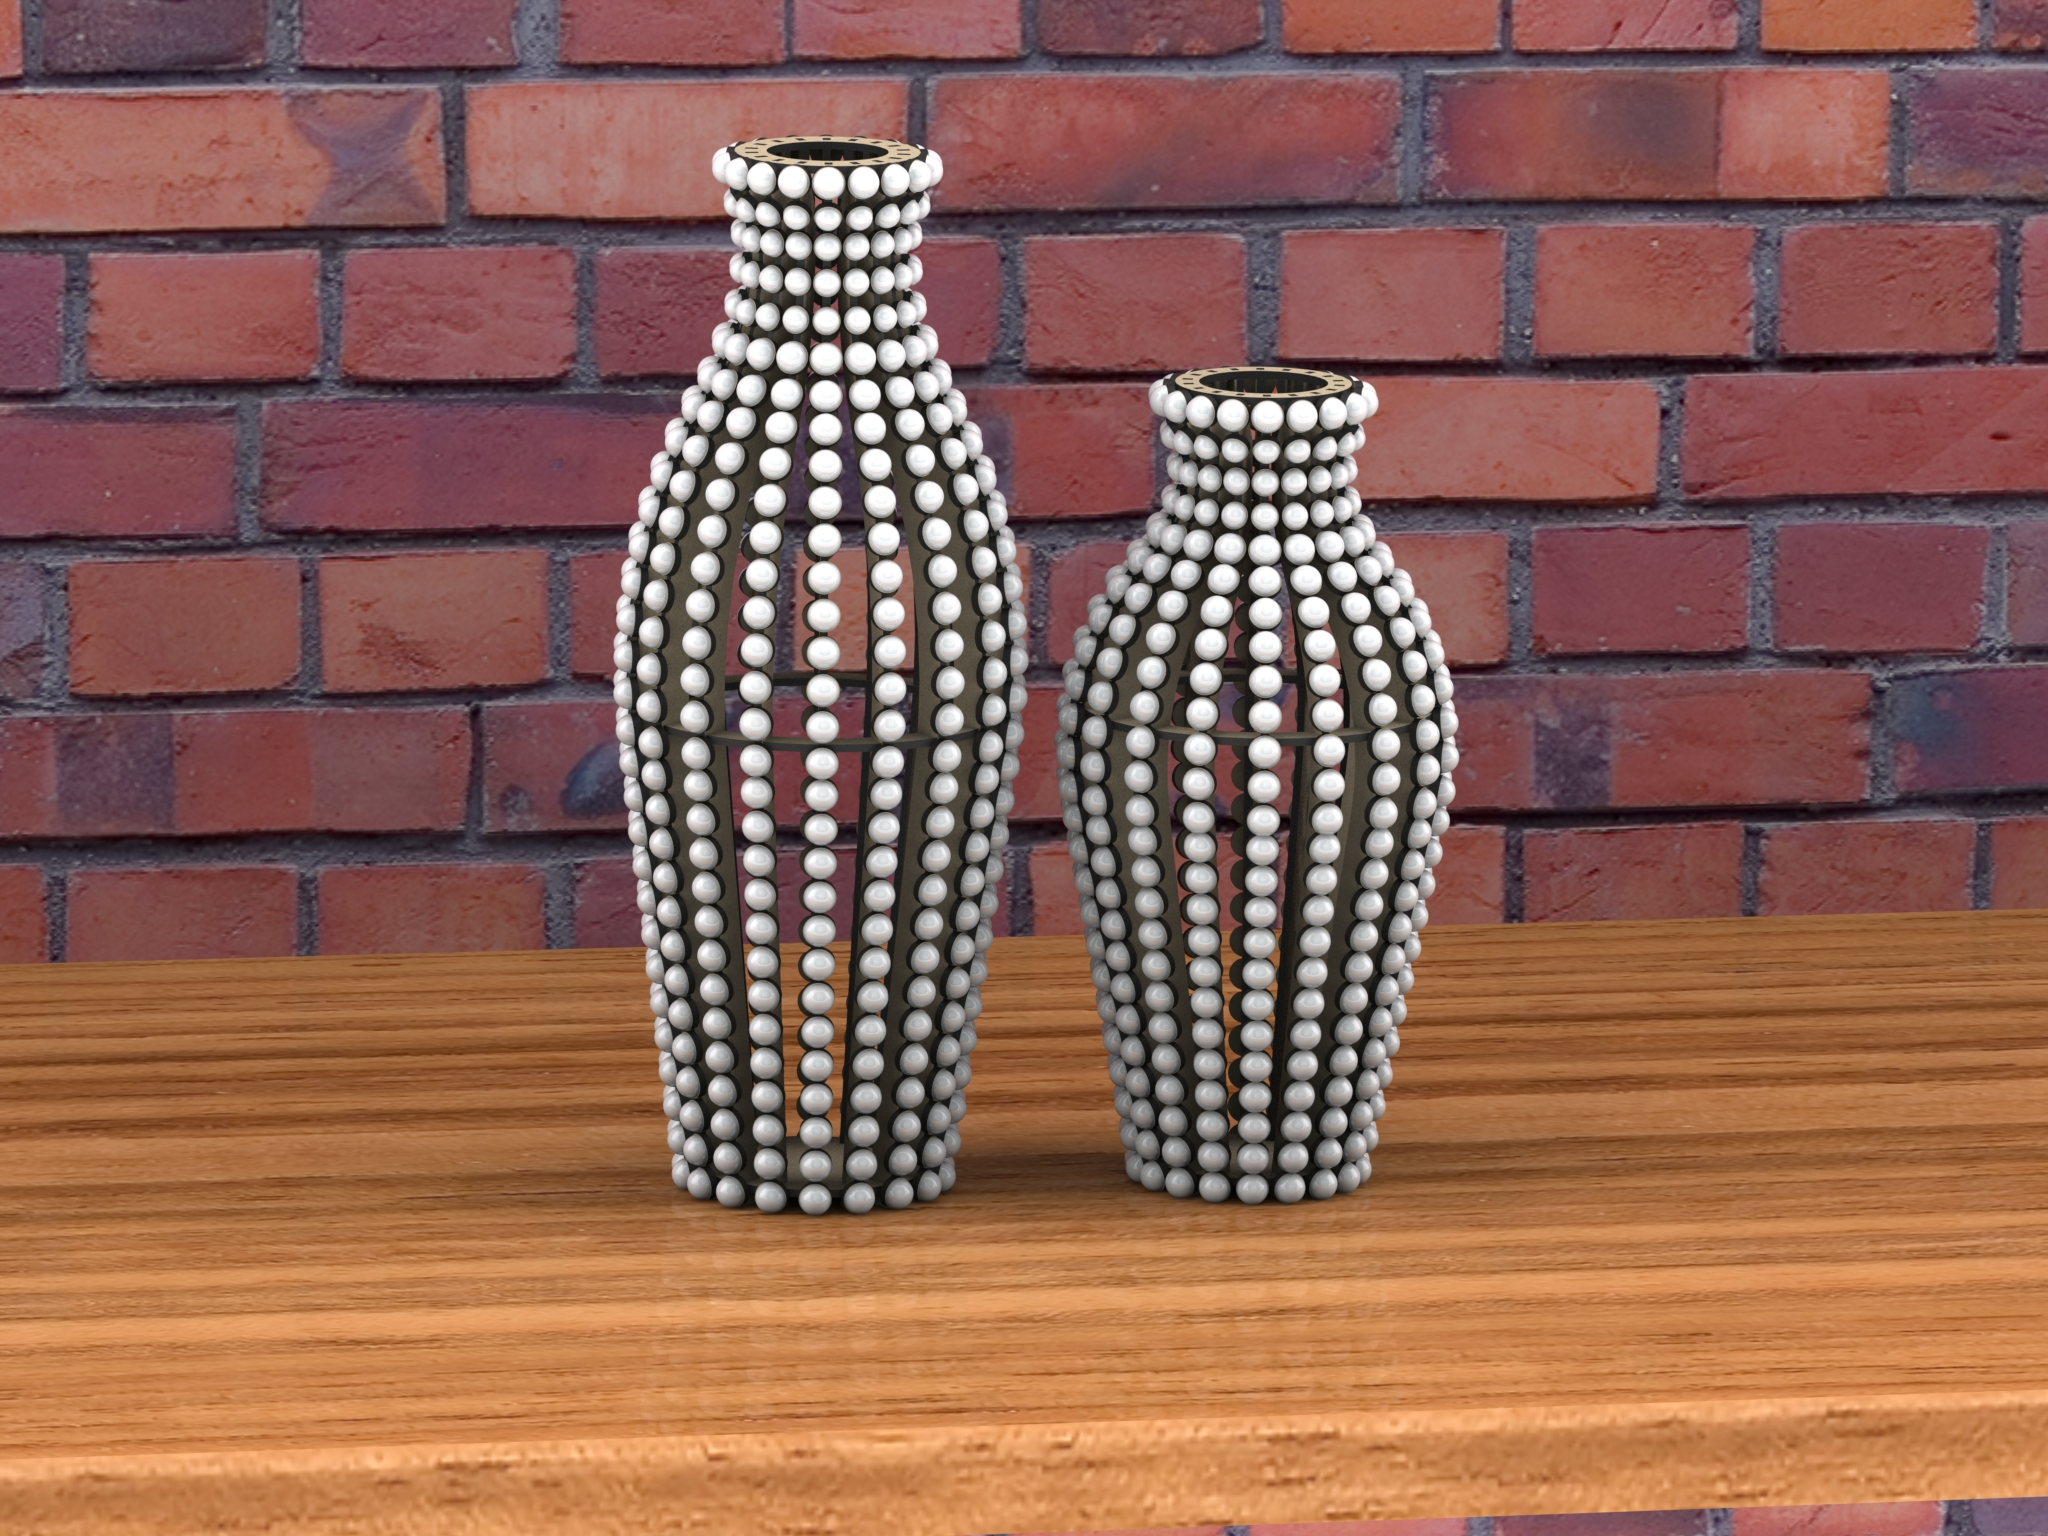 Amazing Laser Cutter Vase Project Ideas Free DXF File